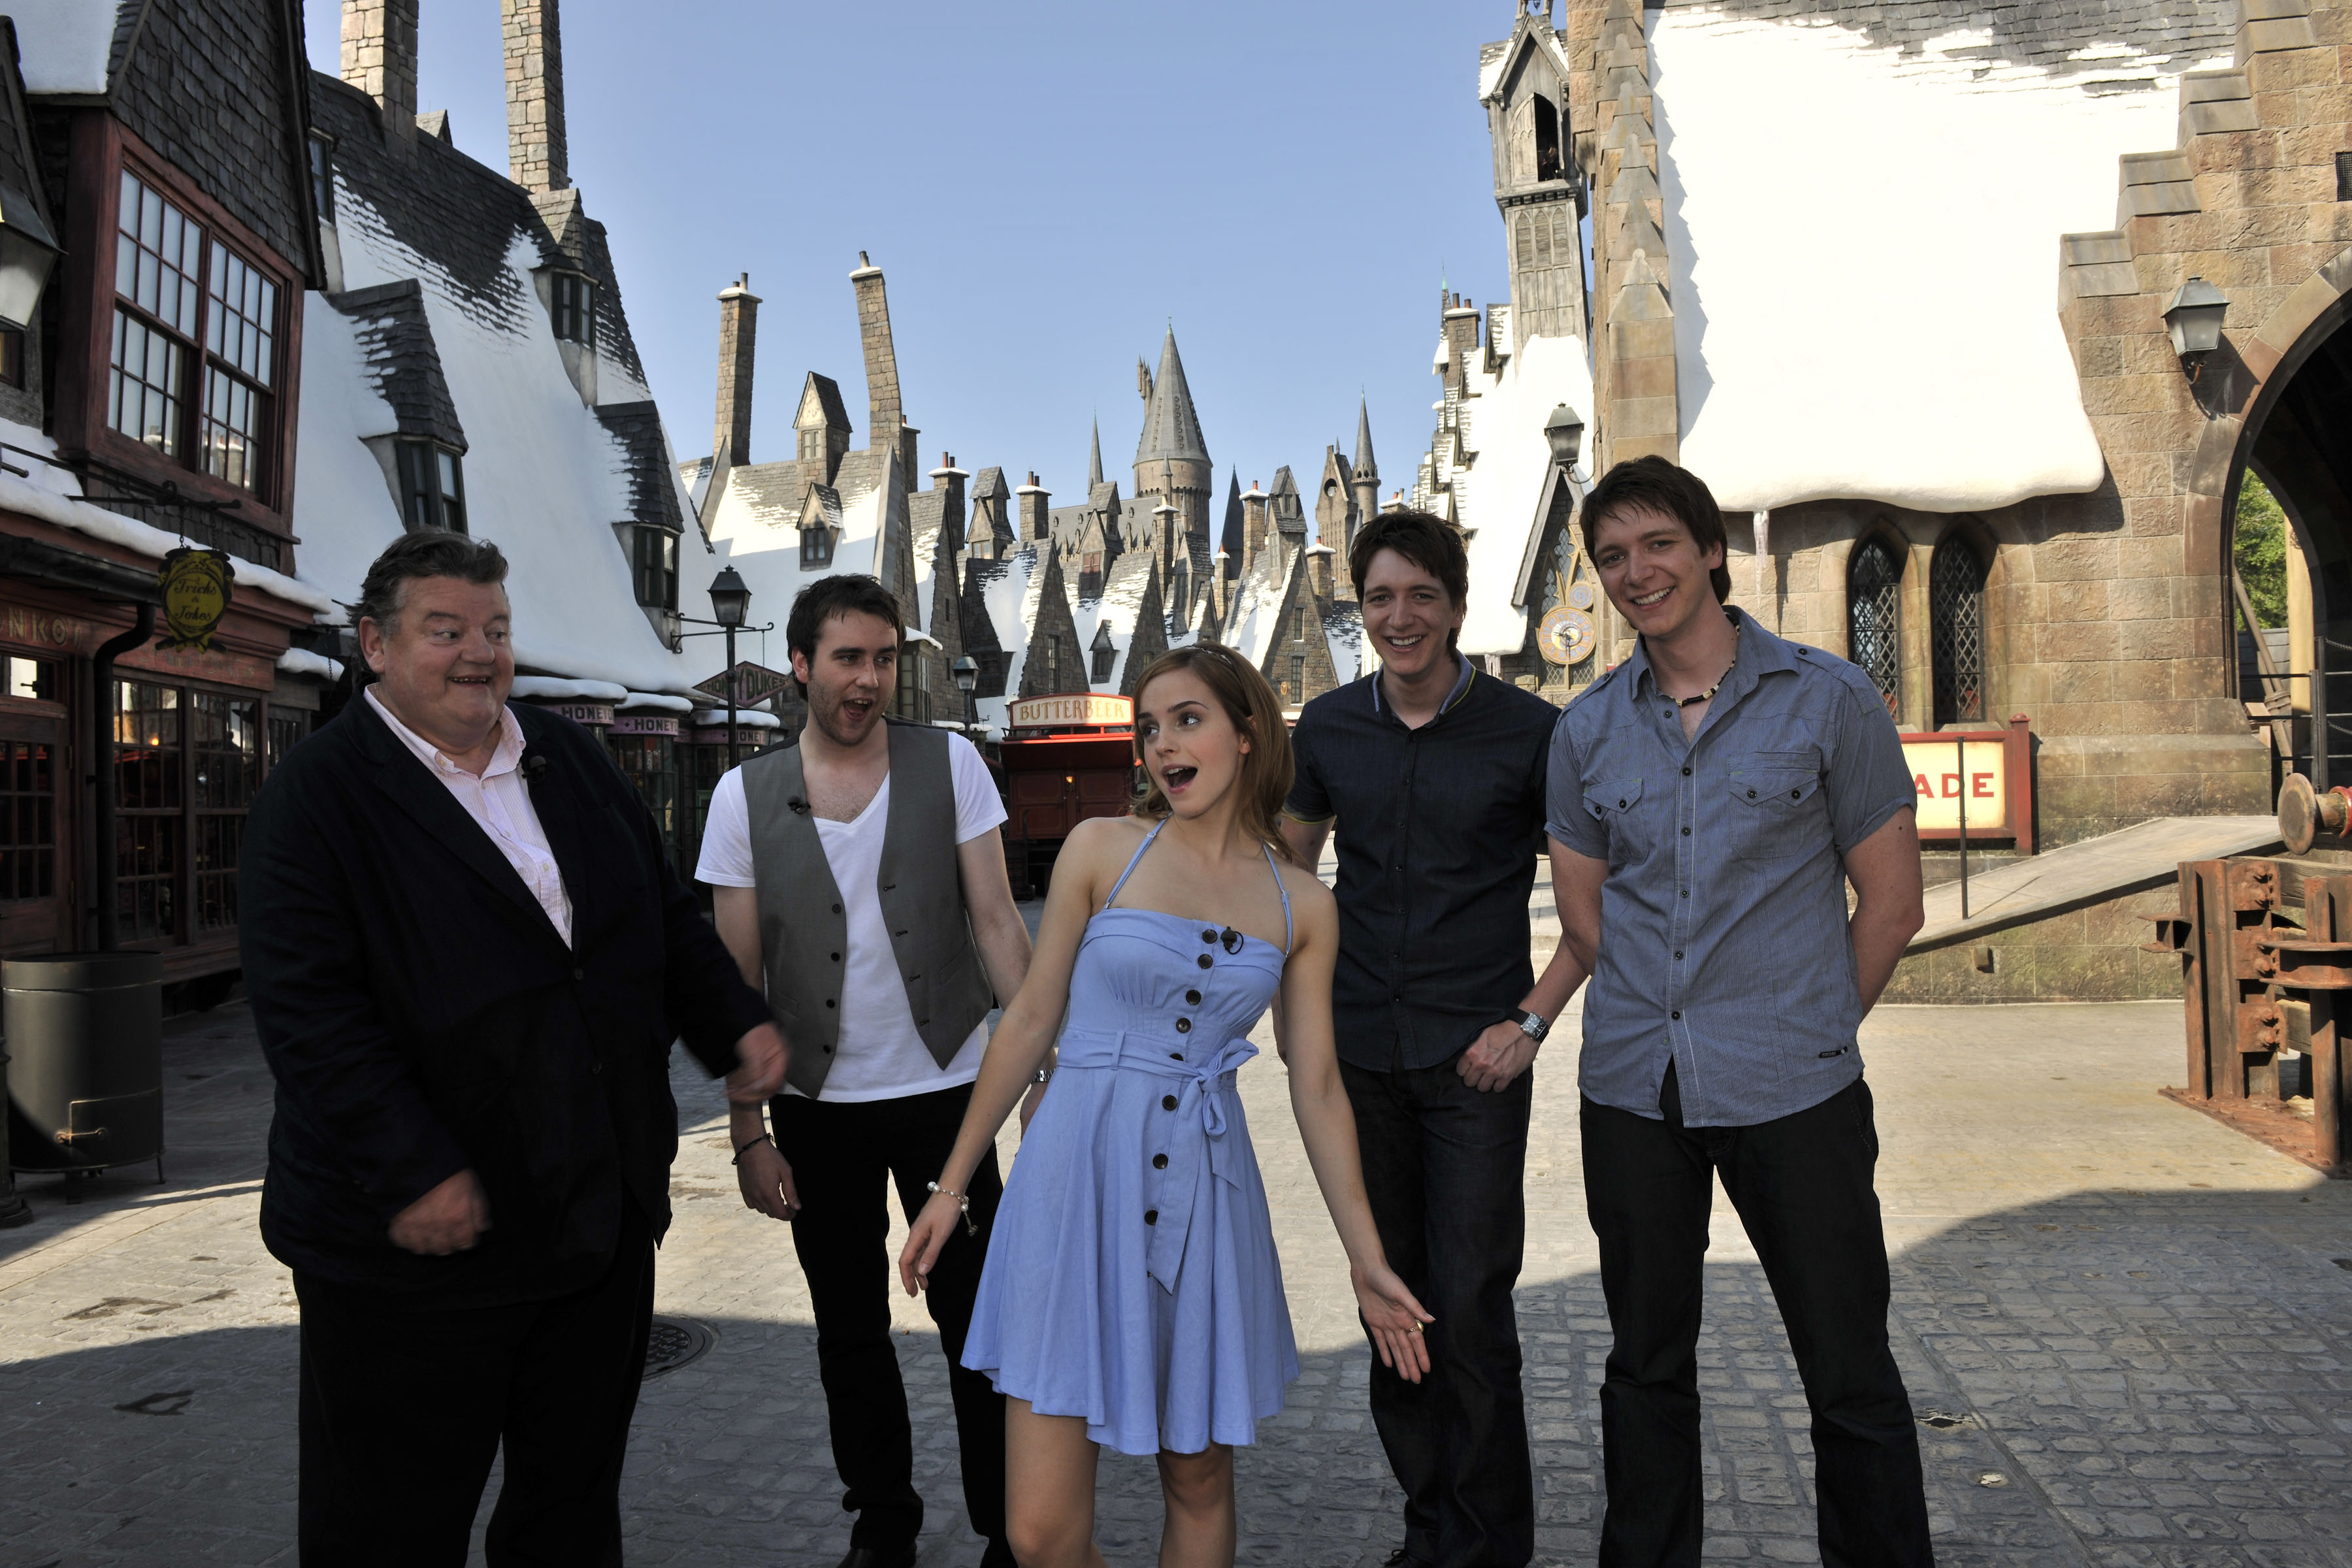 Harry Potter cast infront of the Harry Potter set at Orlando Universal Studios